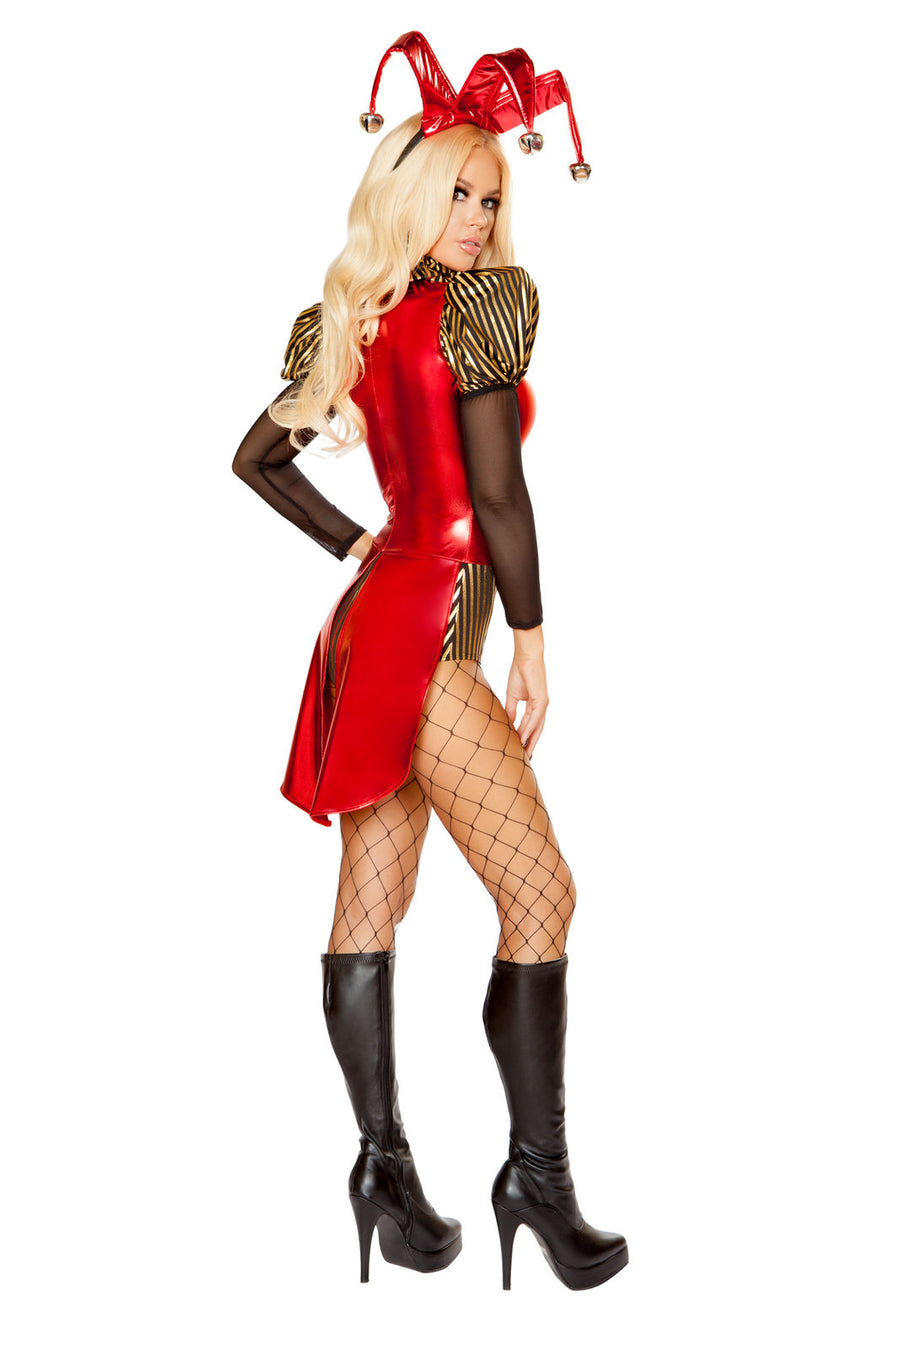 10107 - 3pc Rascal Jester ${description} | Roma Costume and Roma Confidential wholesale manufacturer of Women Apparel bulk world wide wholesale and world wide drop ship services for Adult Halloween Costumes, Sexy and Elegant Lingerie, Rave Clothing, Club wear, and Christmas Costumes. Costumes, Roma Costume, Inc., Roma Costume, Roma Confidential, Wholesale clothing, drop ship, drop ship service, Wholesale Lingerie, Wholesale Adult Halloween Costumes, Rave Clothing, EDM Clothing, Festival Wear, Christmas Costumes, Clubwear, Club wear.